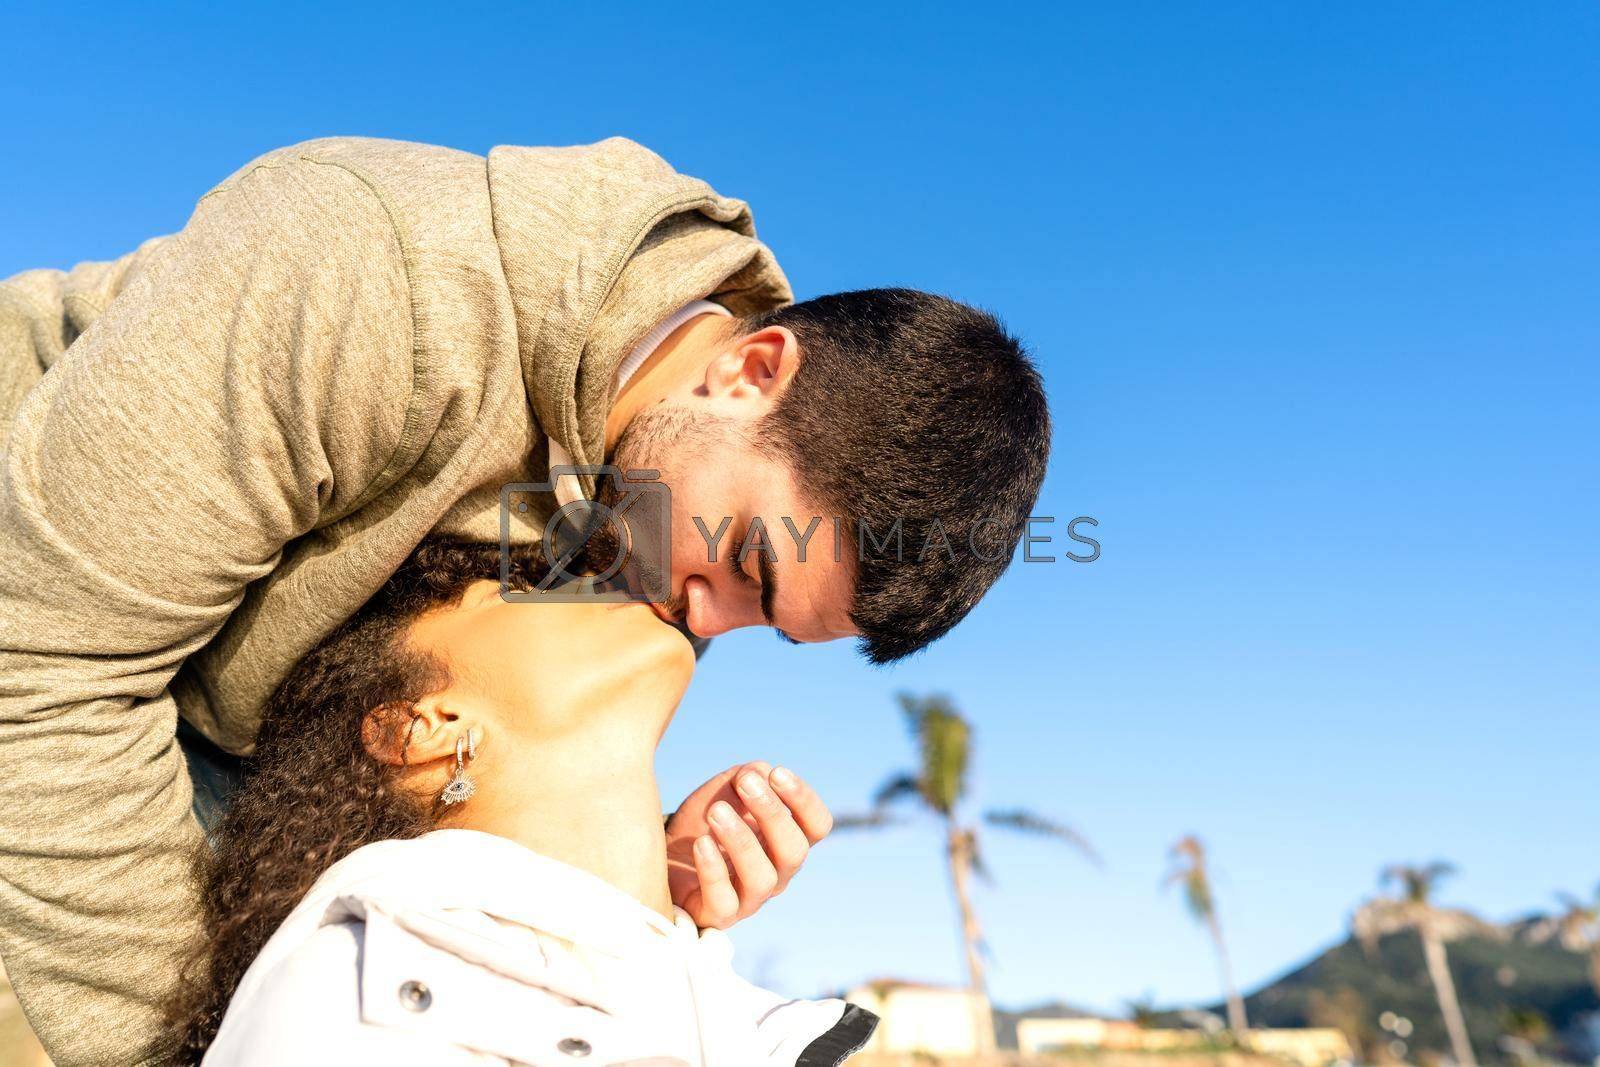 Royalty free image of Handsome guy kissing her african-american black girlfriend approaching her mouth from above. Mixed race young couple in love romance vacation scene in sea or ocean resort with copy space in blue sky by robbyfontanesi